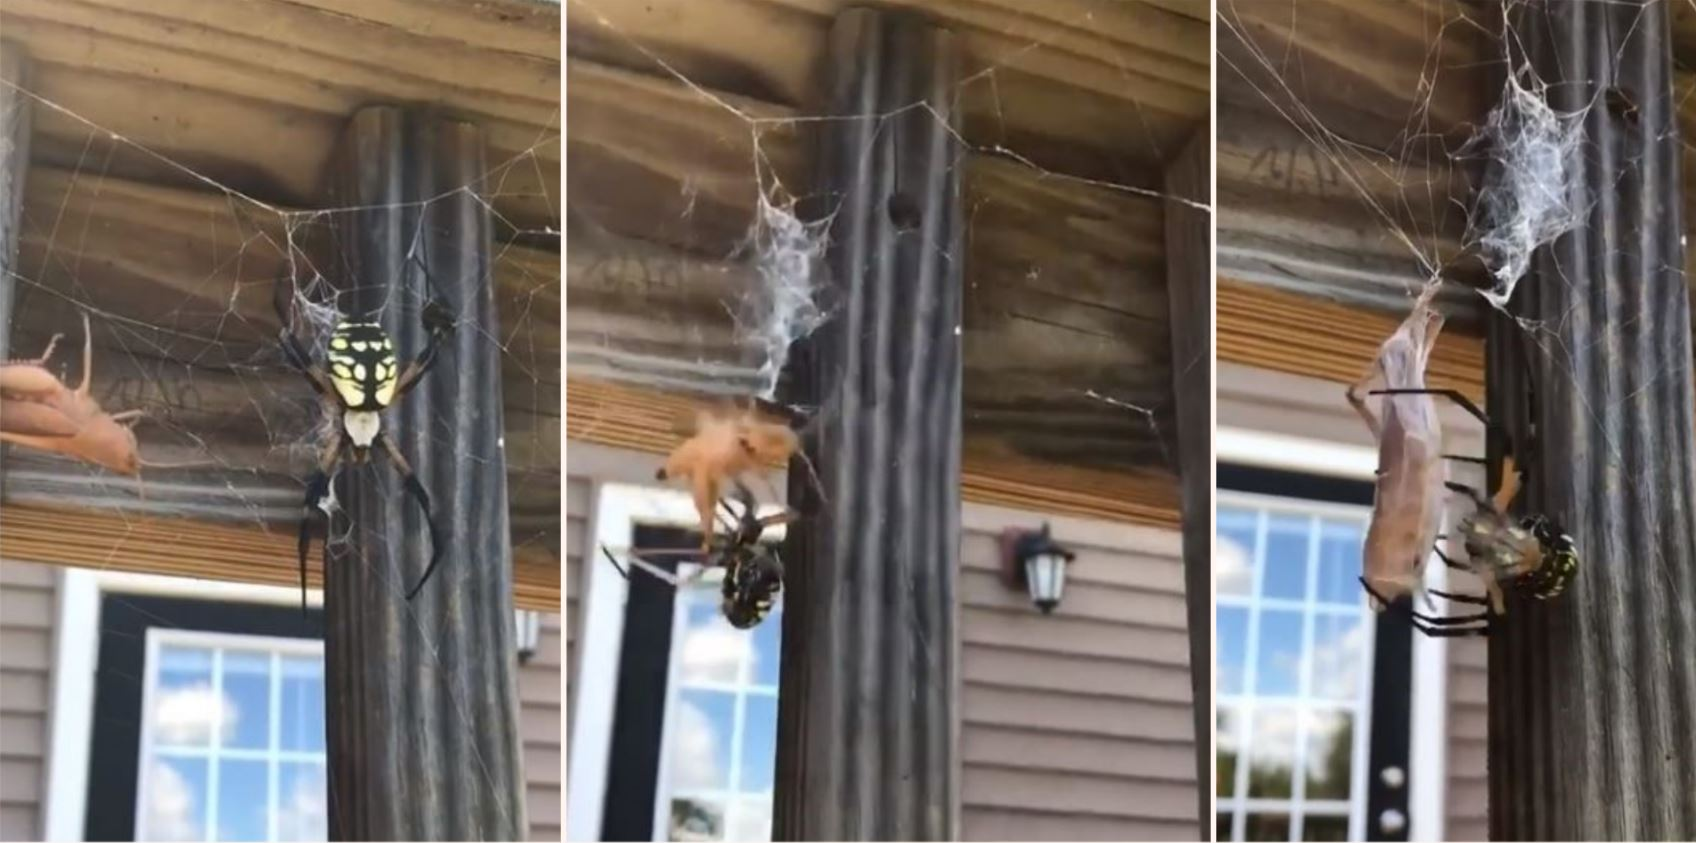 The terrifying moment bloke feeds grasshopper to spider